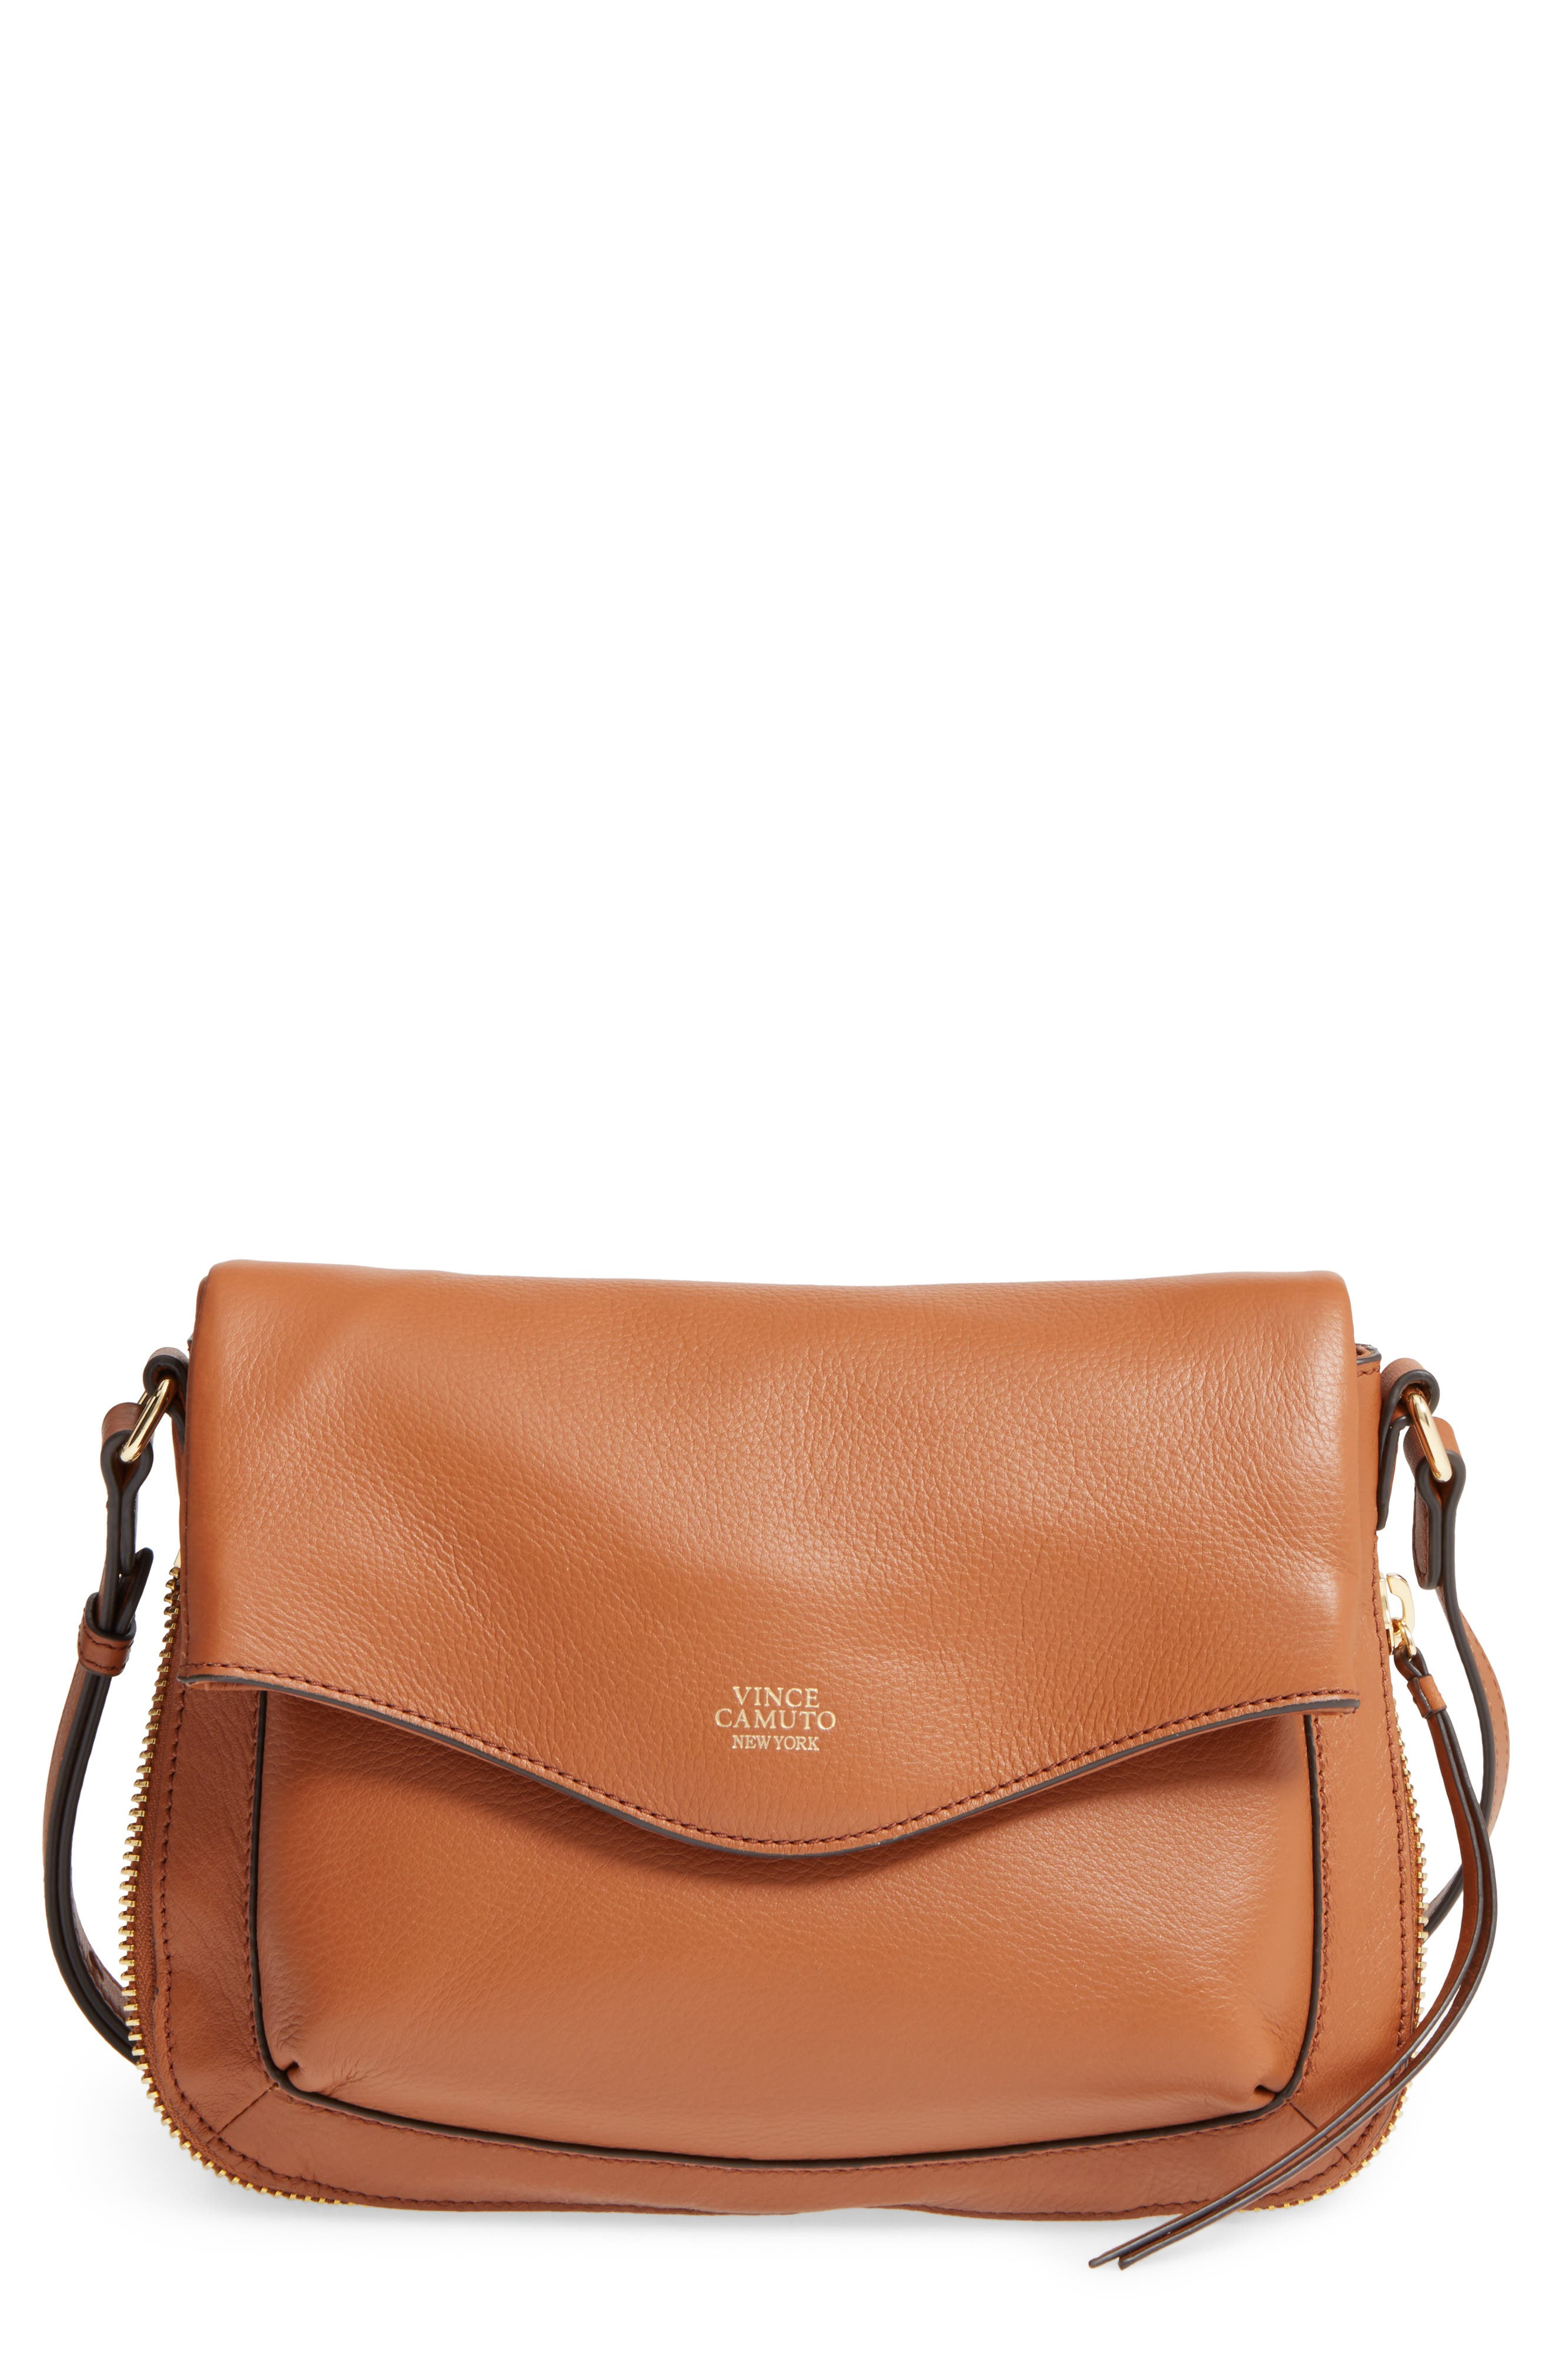 Main Image - Vince Camuto Dafni Leather Crossbody (Nordstrom Exclusive)